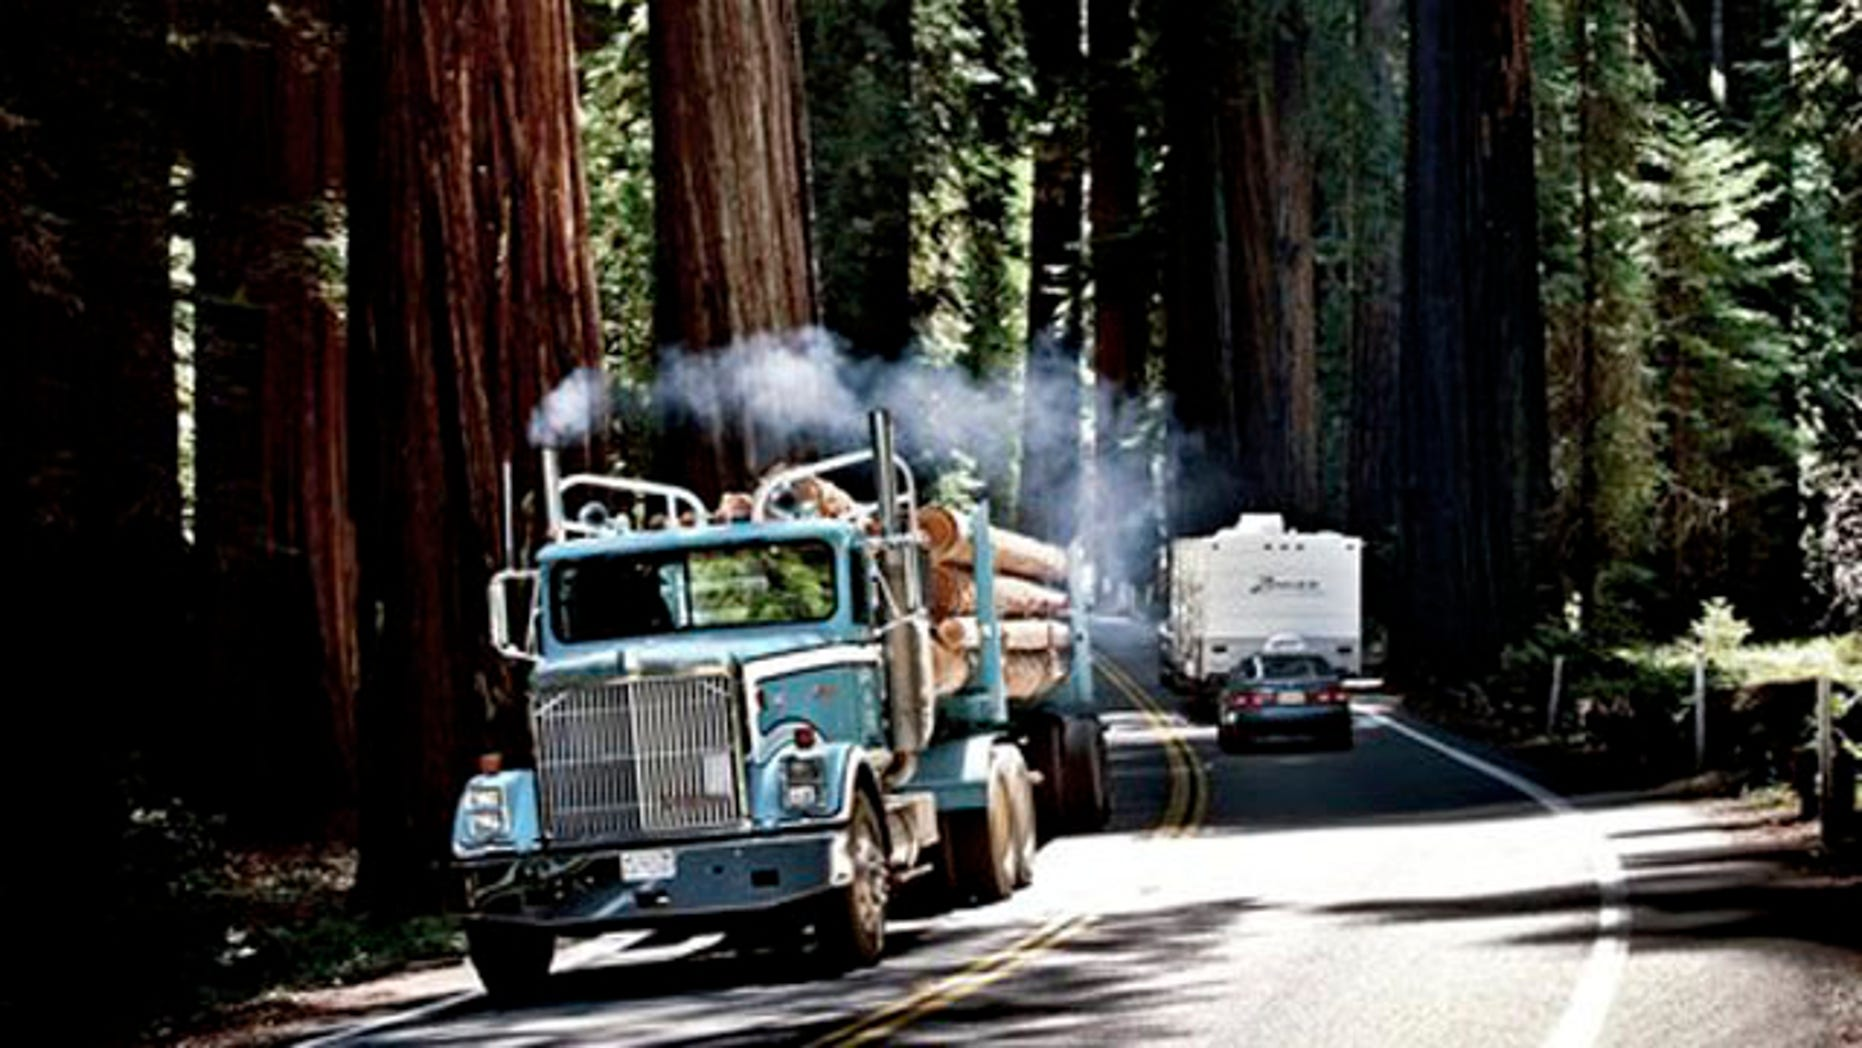 A lumber truck makes its way through the woods with freshly cut timber.